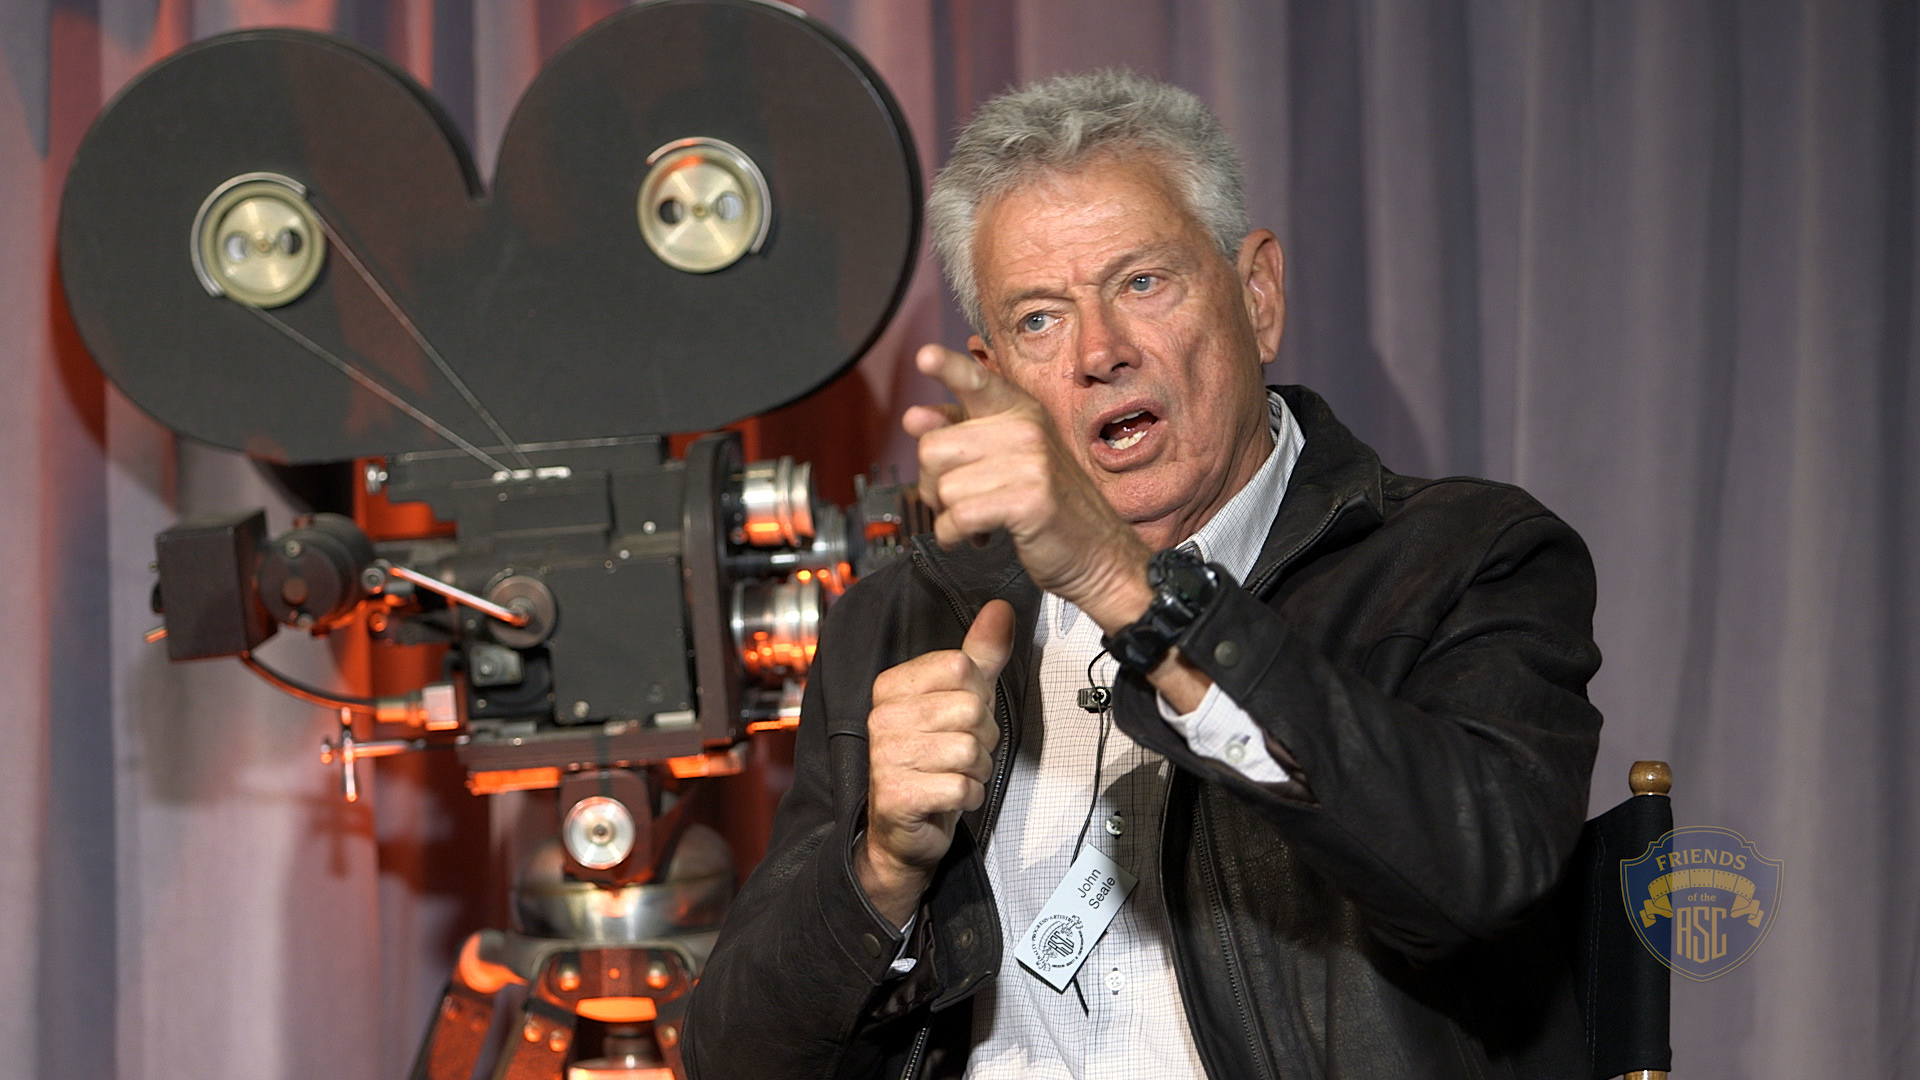 John Seale, ASC, ACS: The Look of Mad Max: Fury Road